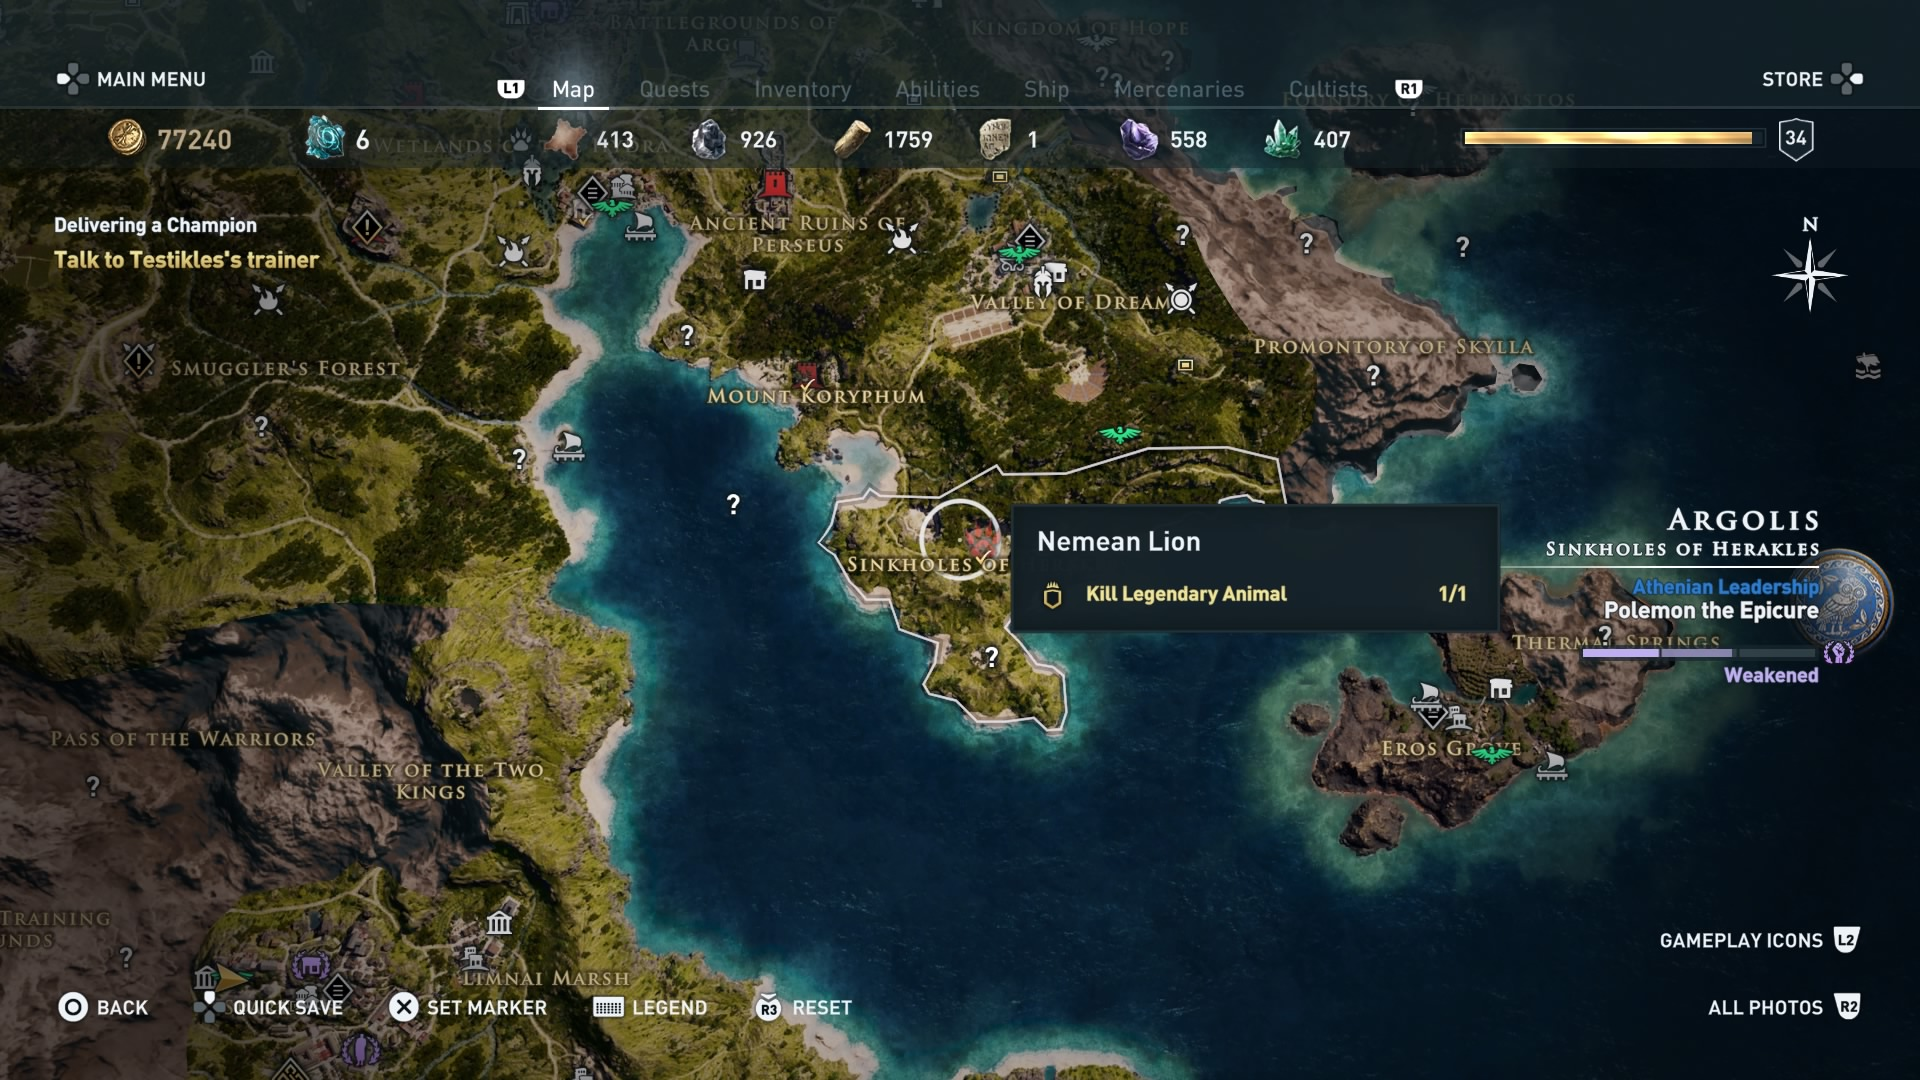 Assassin's Creed Odyssey: The Nemean Lion location